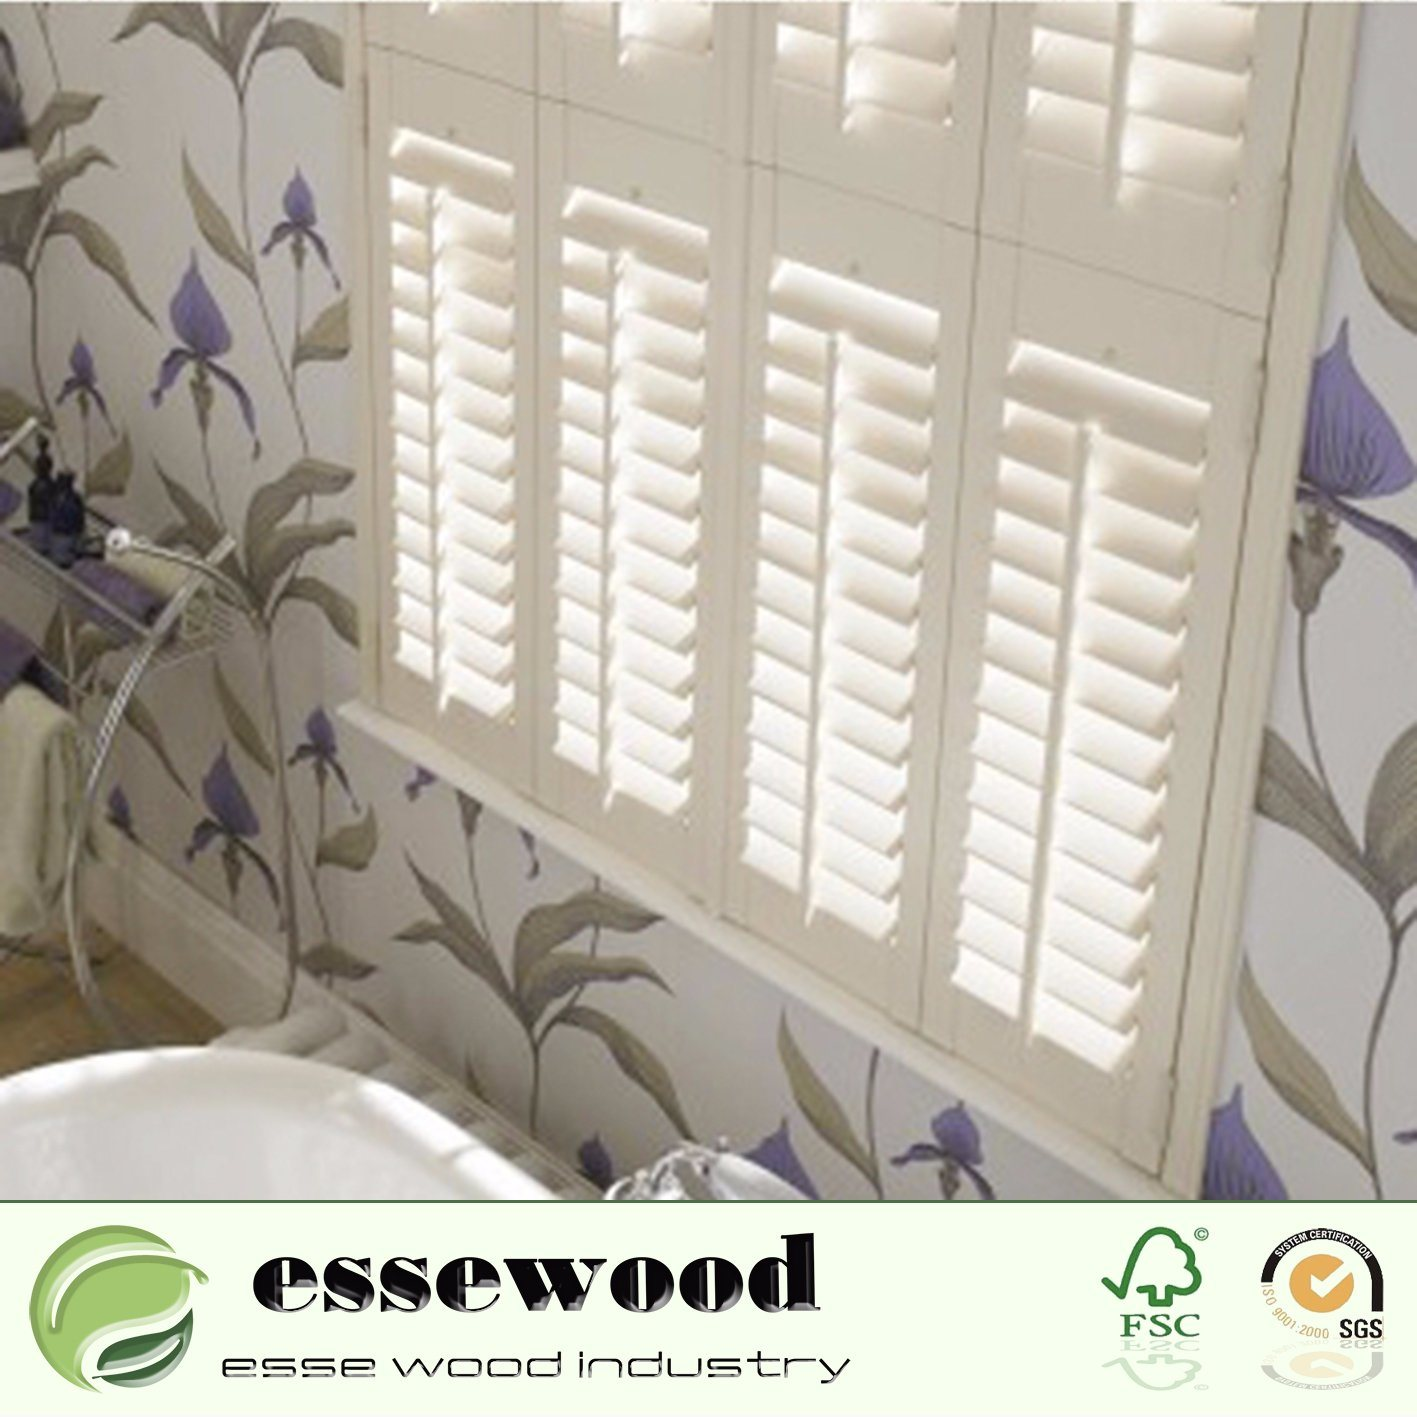 Hot Item Reinforced Movable Louver Decorative White Interior Pvc Or Wood Plantation Shutters